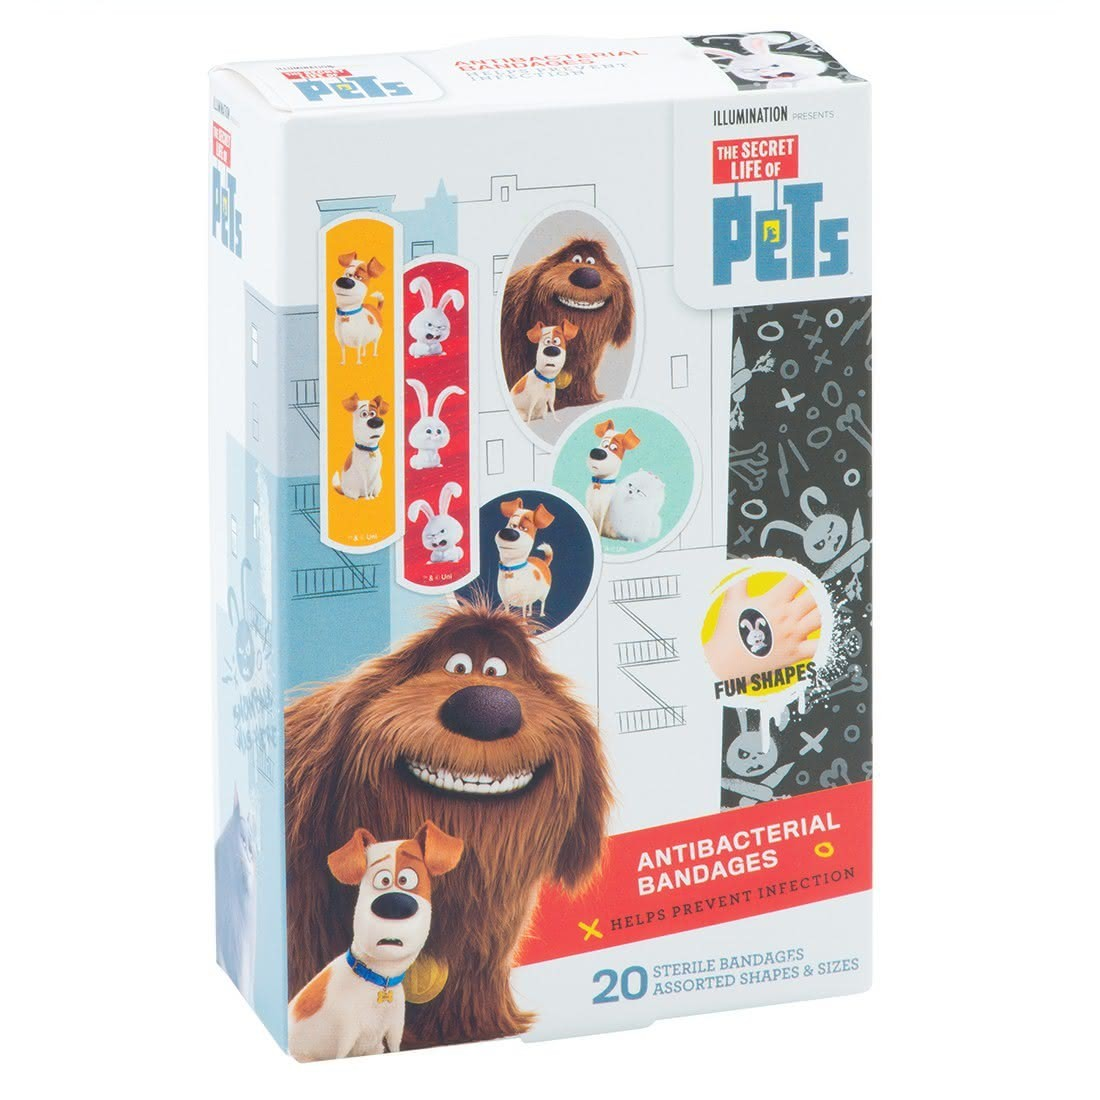 The Secret Life of Pets Antibacterial Bandages [image]